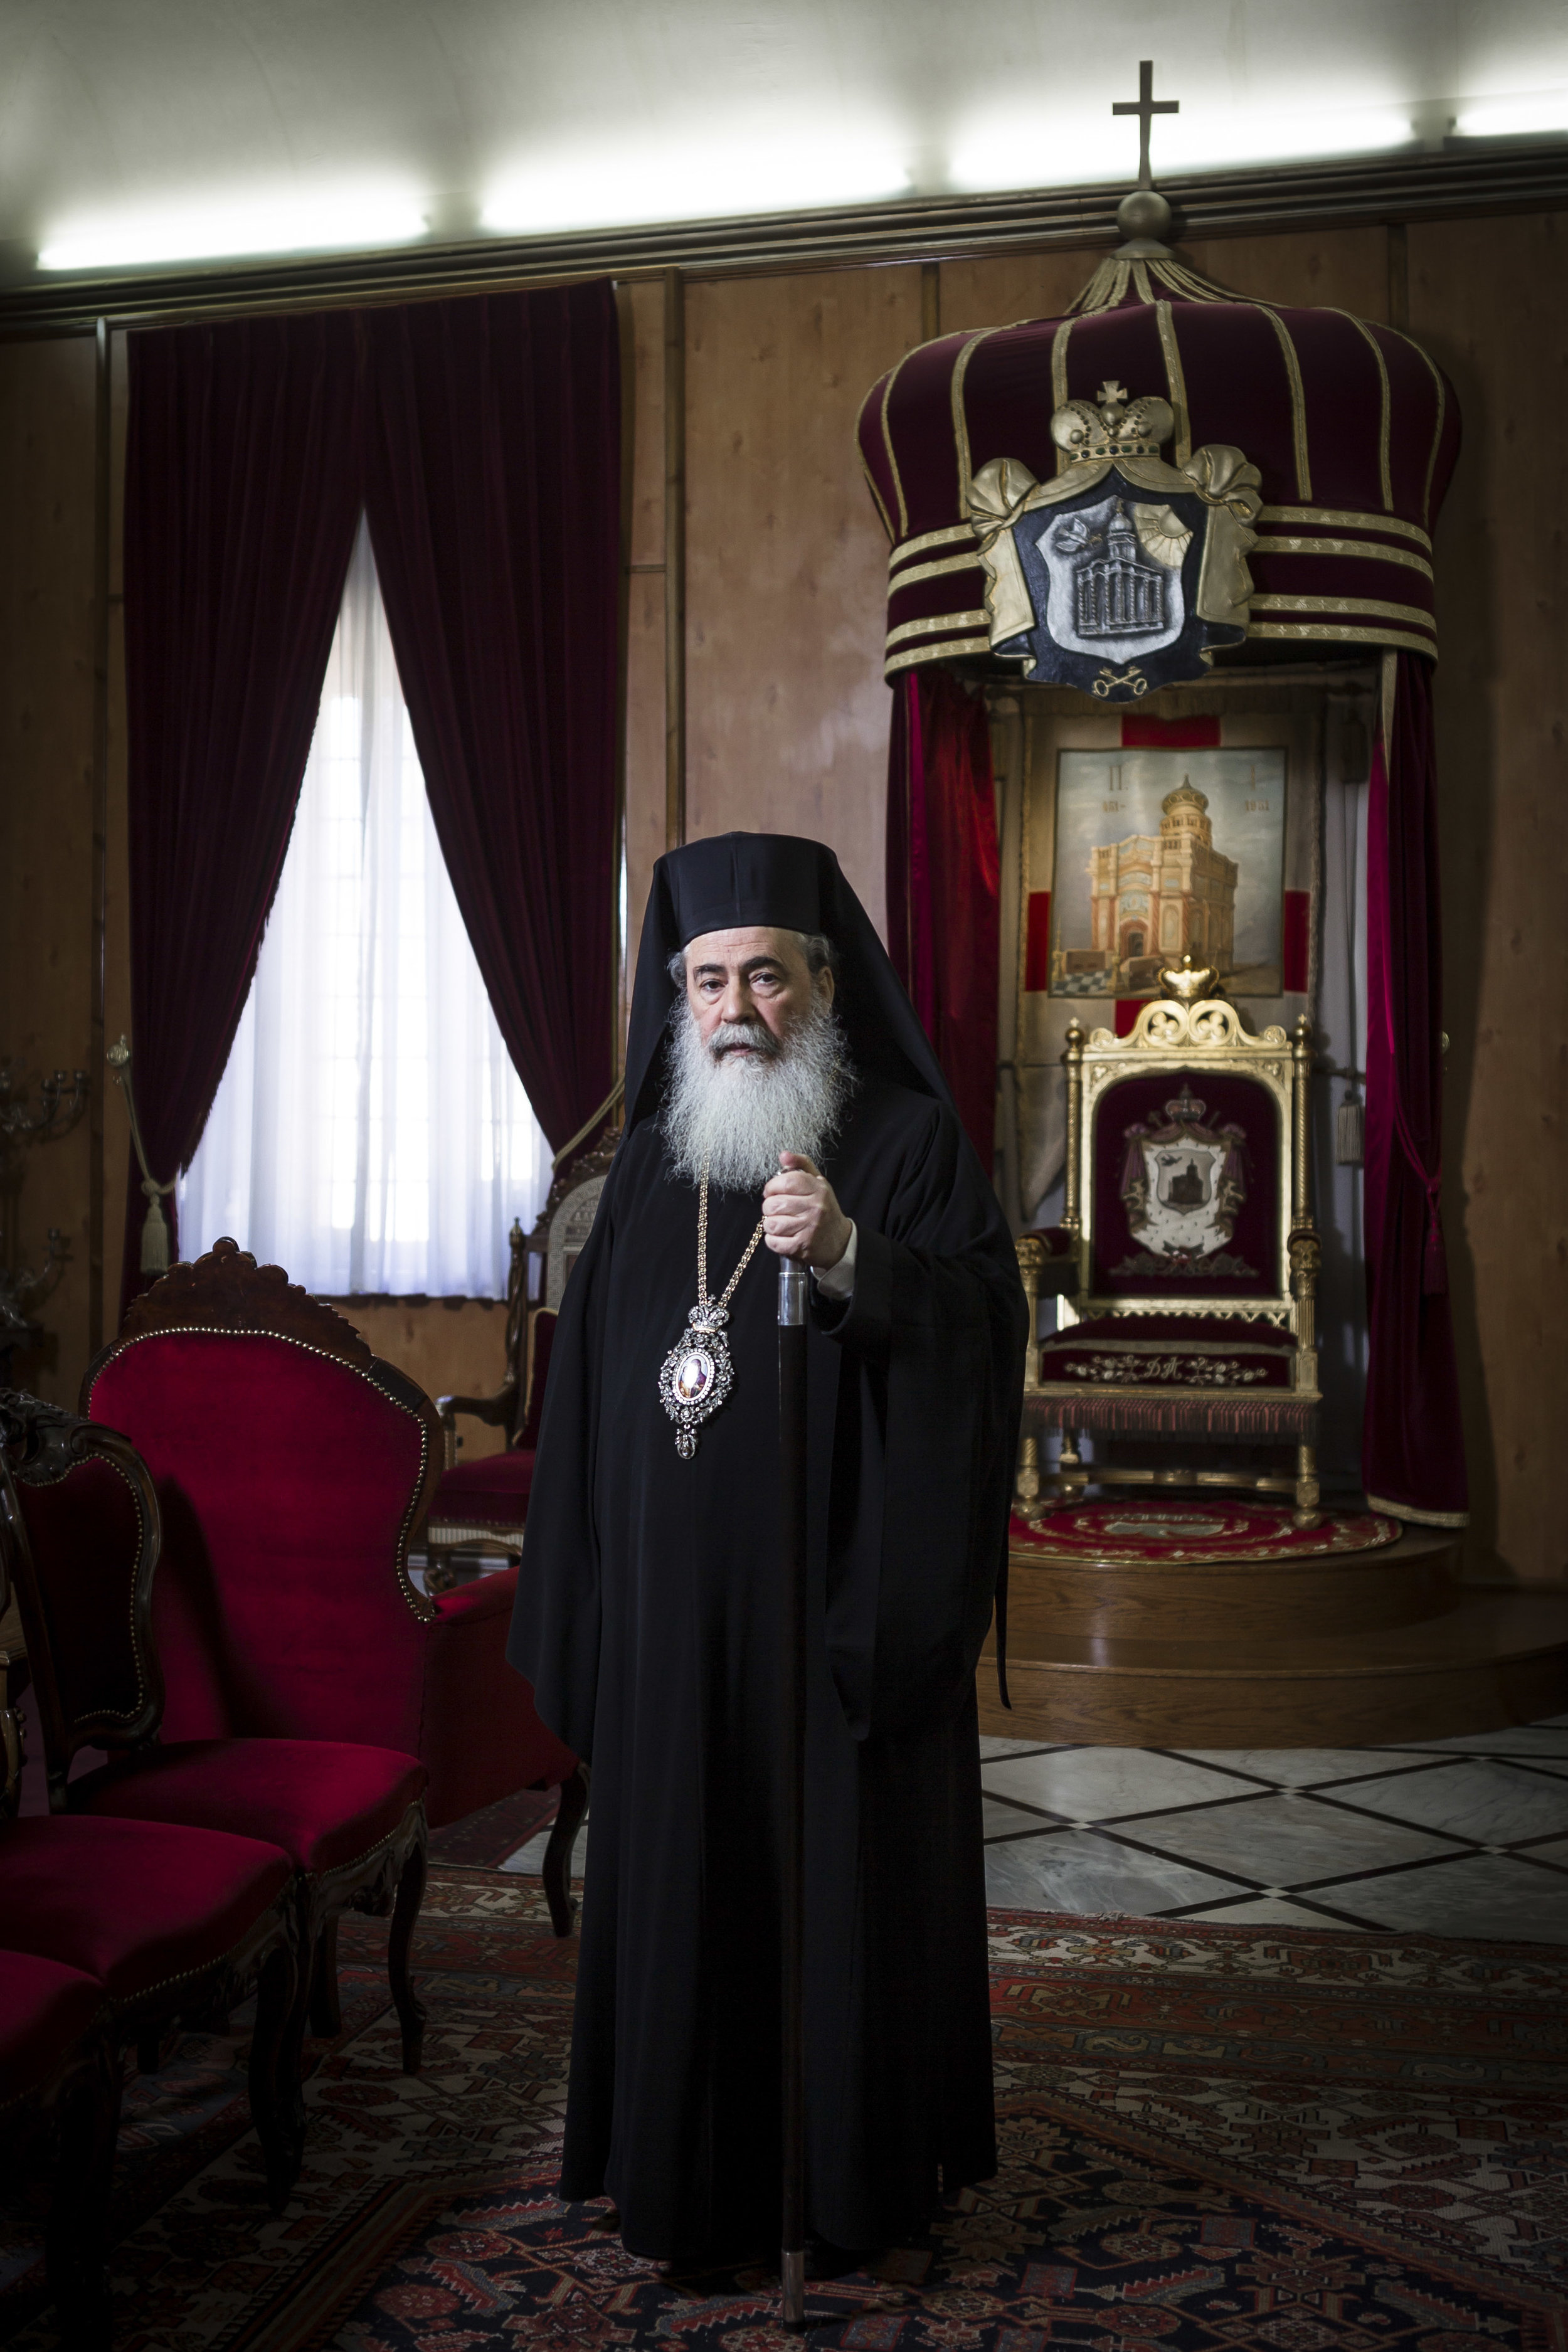 Portrait of Theophilos III, Patriarch of the Greek Orthodox Patriarchate of Jerusalem